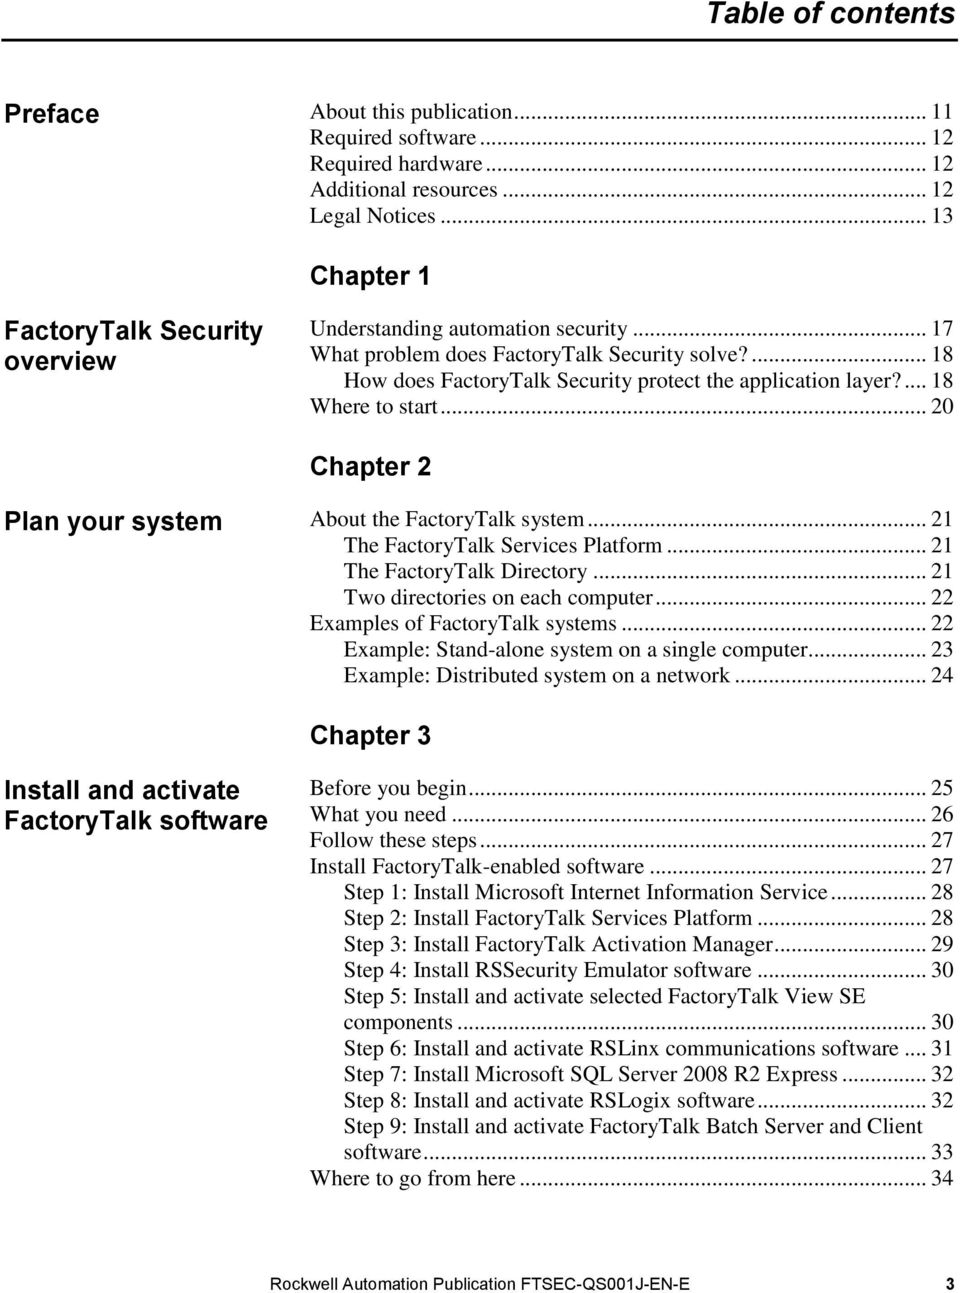 ... 18 Where to start... 20 Chapter 2 Plan your system About the FactoryTalk system... 21 The FactoryTalk Services Platform... 21 The FactoryTalk Directory... 21 Two directories on each computer.